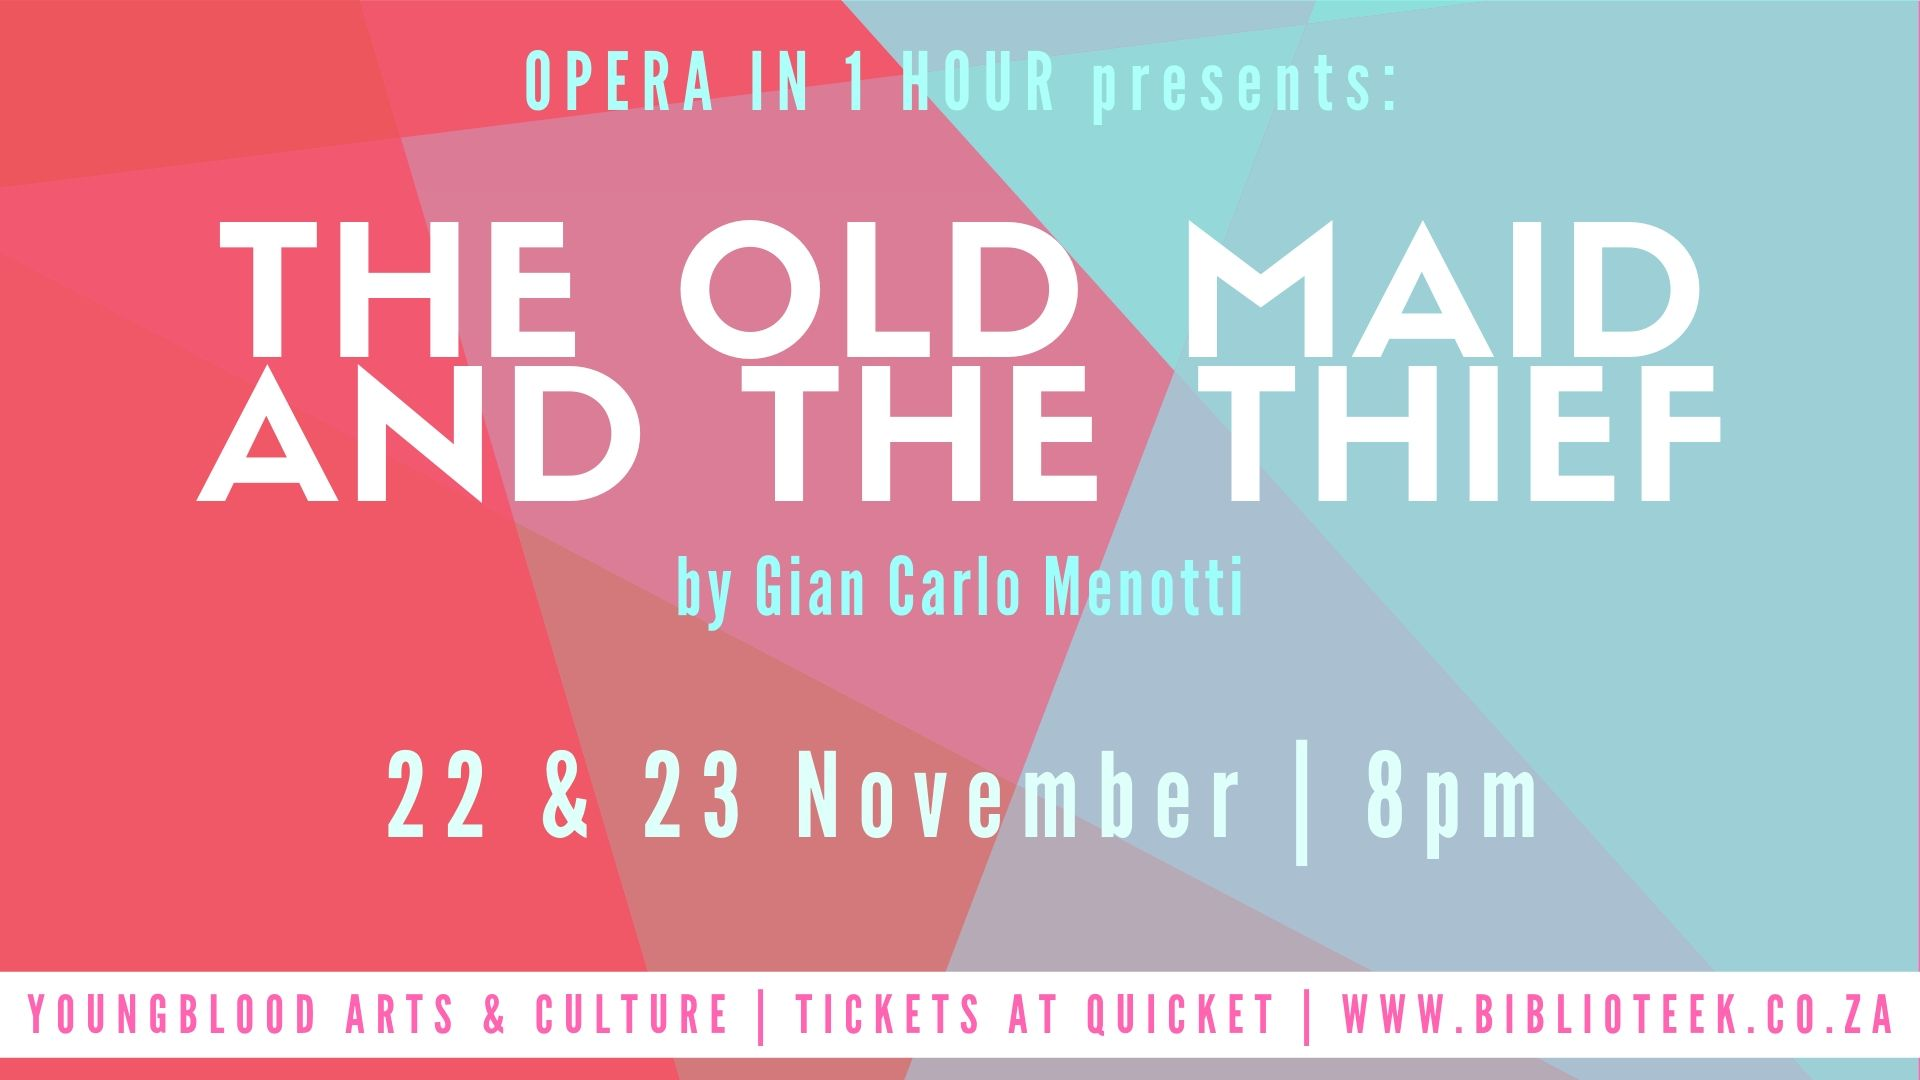 Opera in 1 Hour Presents: The Old Maid and The Thief by